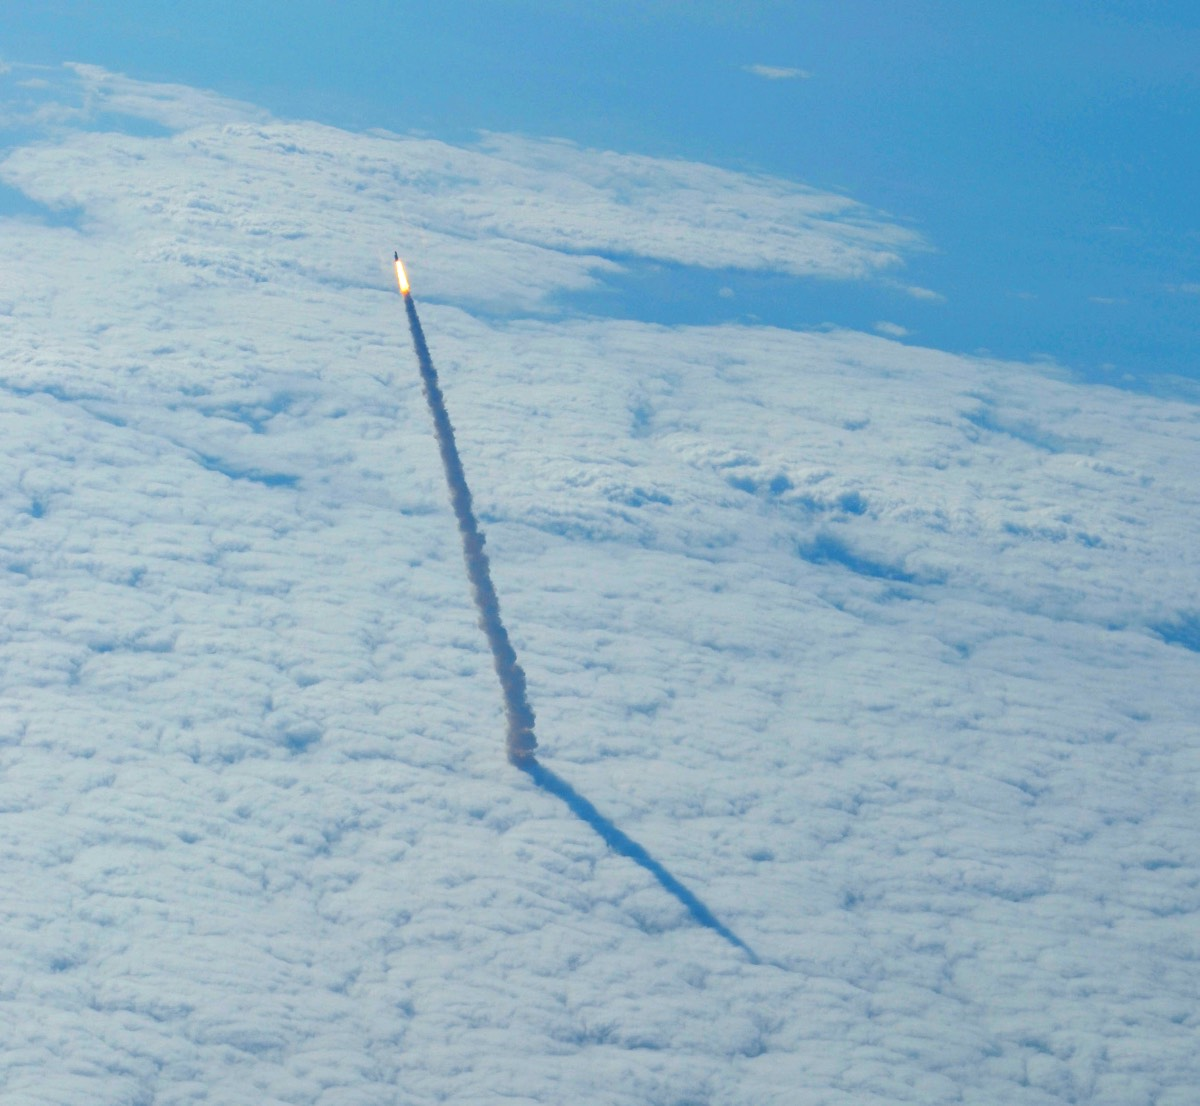 Shuttle Endeavour rising through the clouds